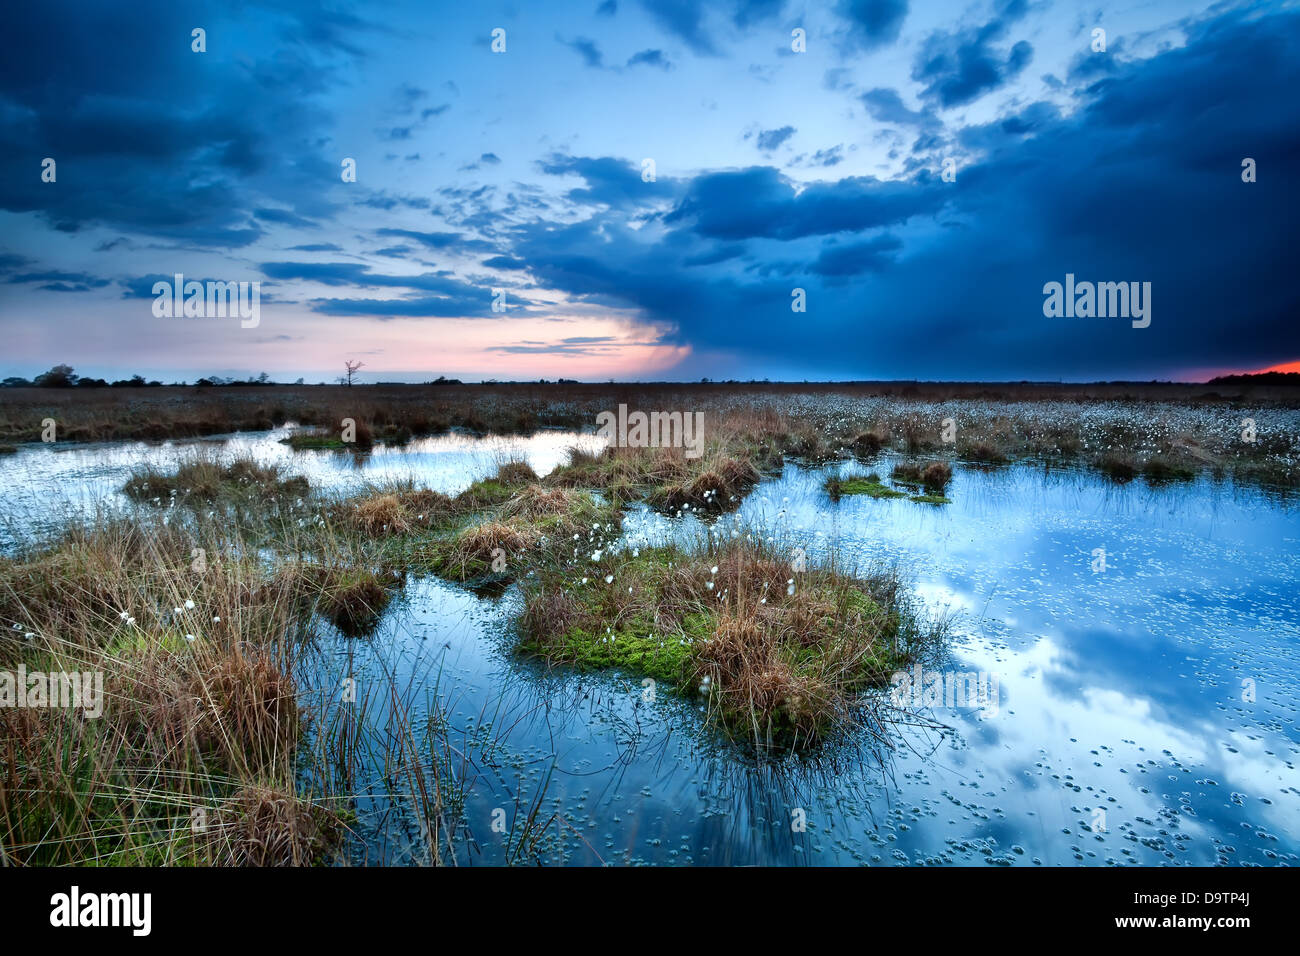 Dark storm clouds over lake at sunset, Fochteloerveen Photo Stock